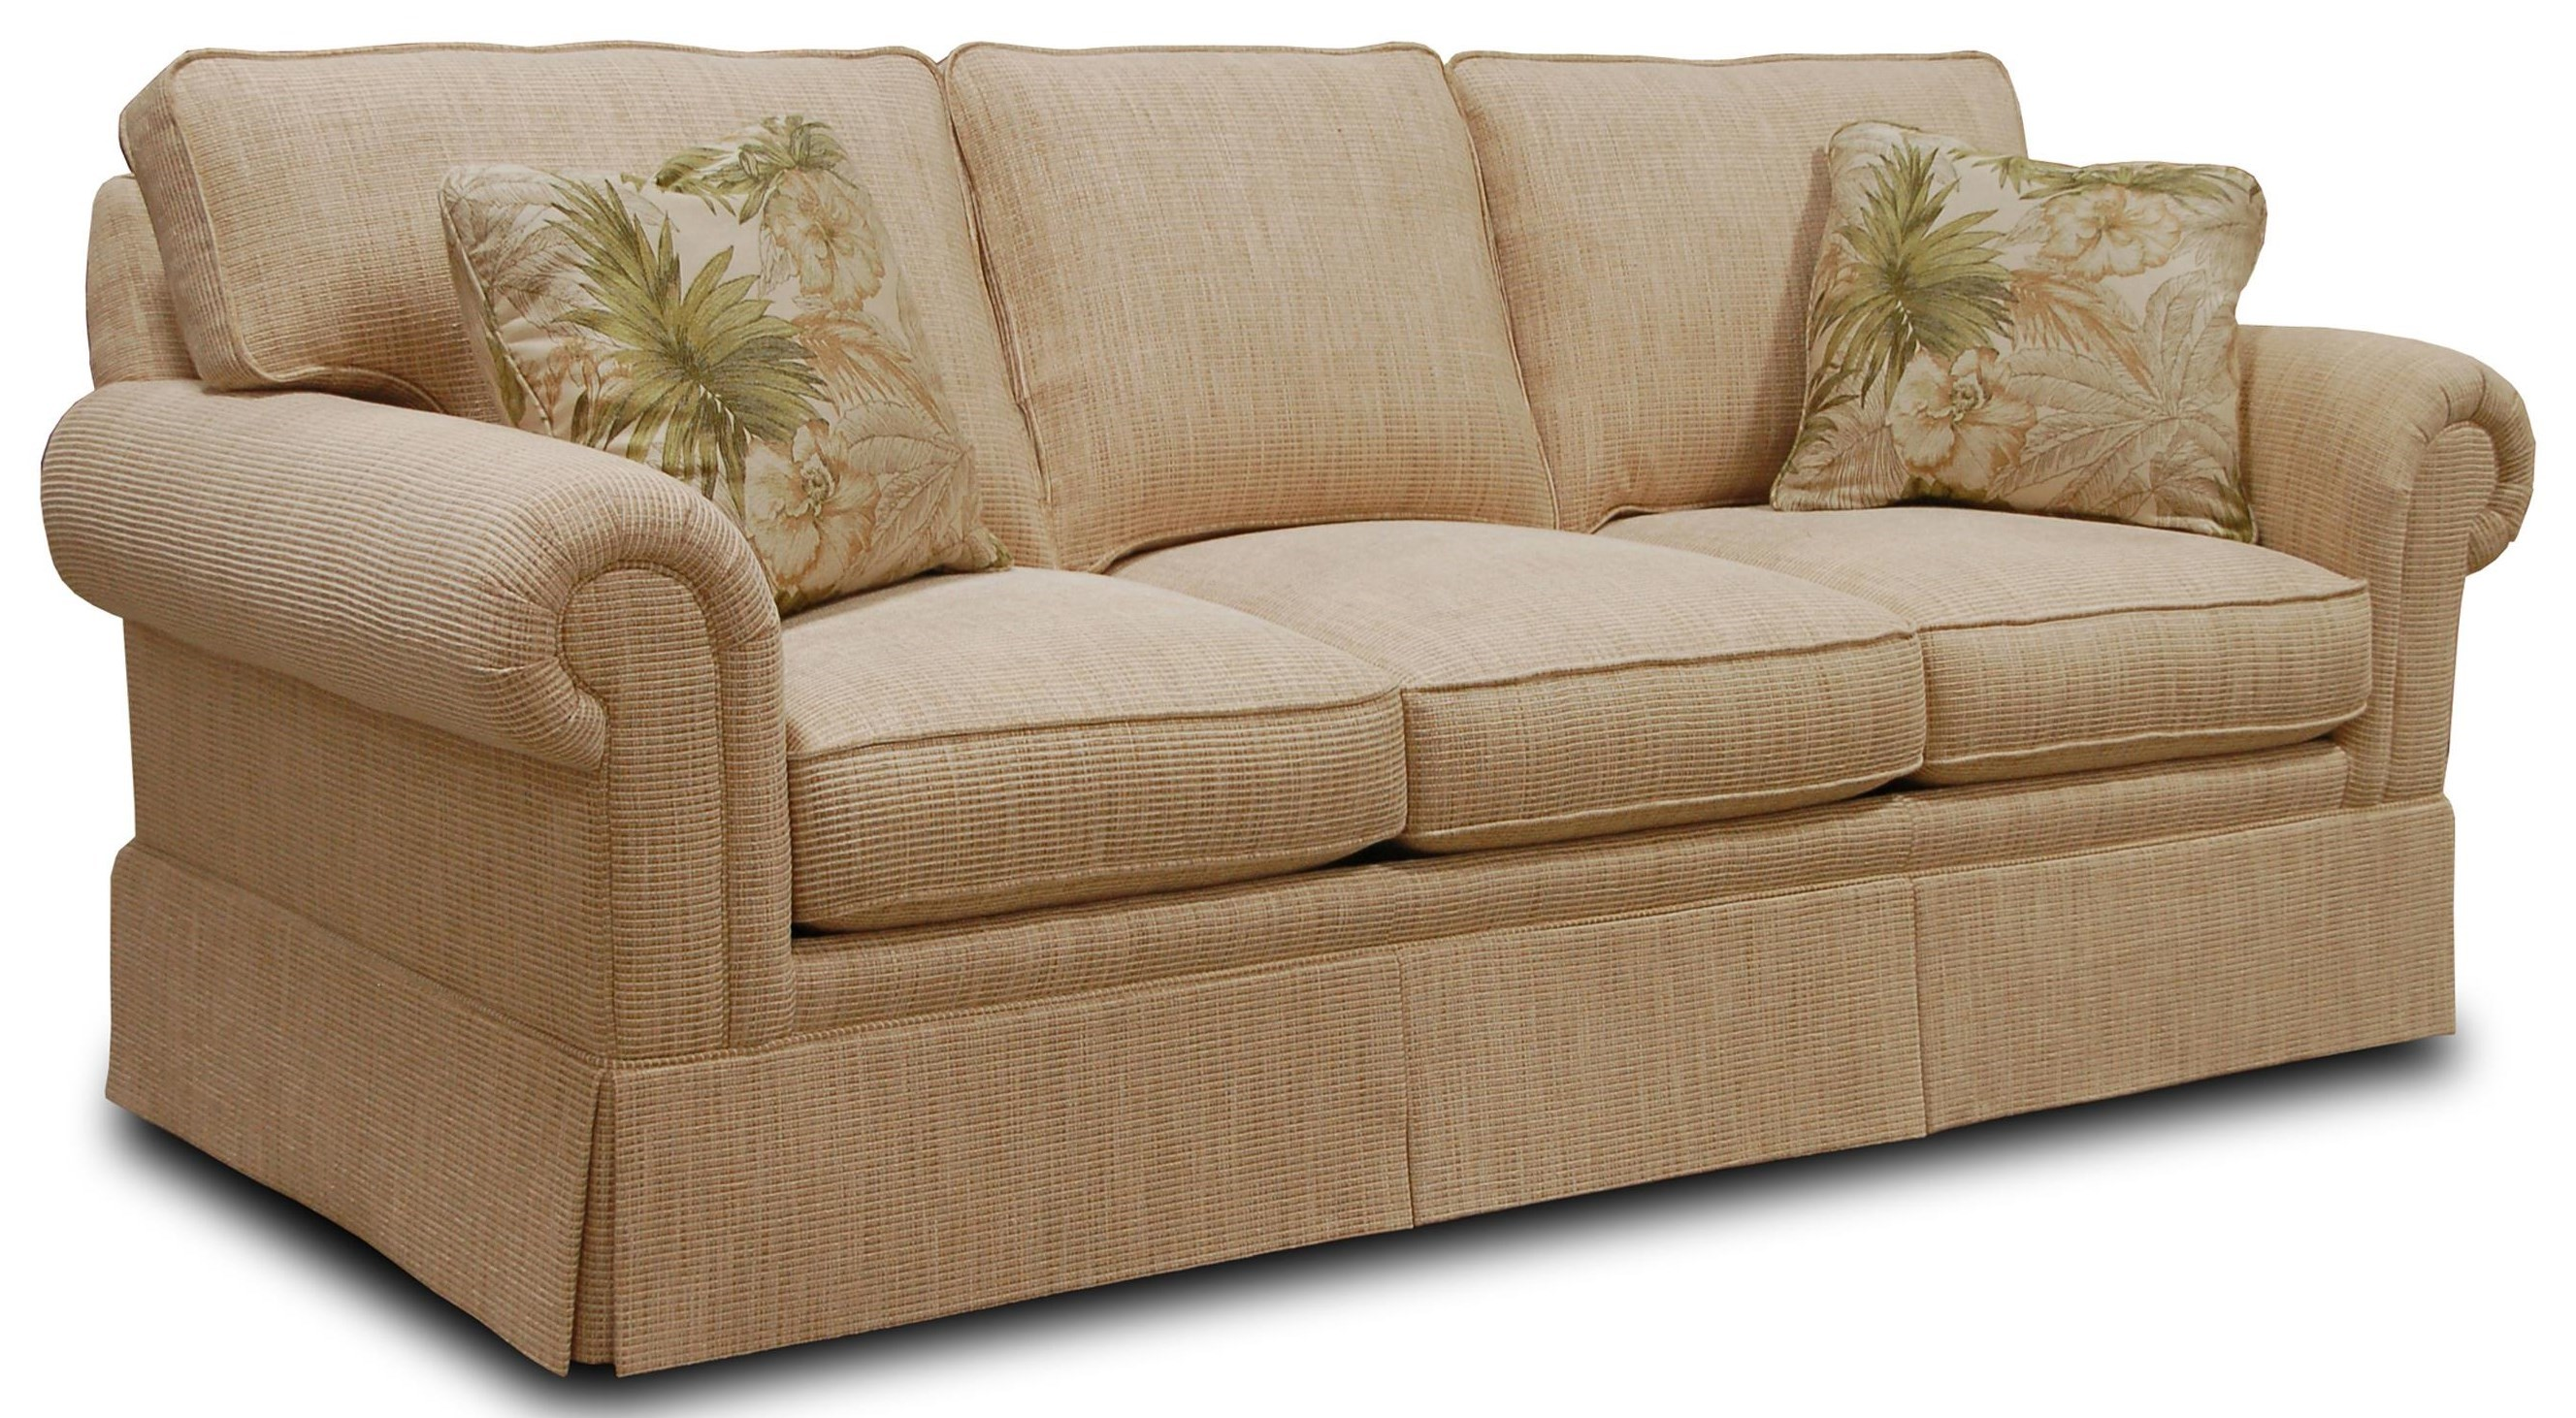 Traditional Sleep Sofa With Loose Back Cushions And Rolled Arms By Sherrill  At Baeru0027s Furniture